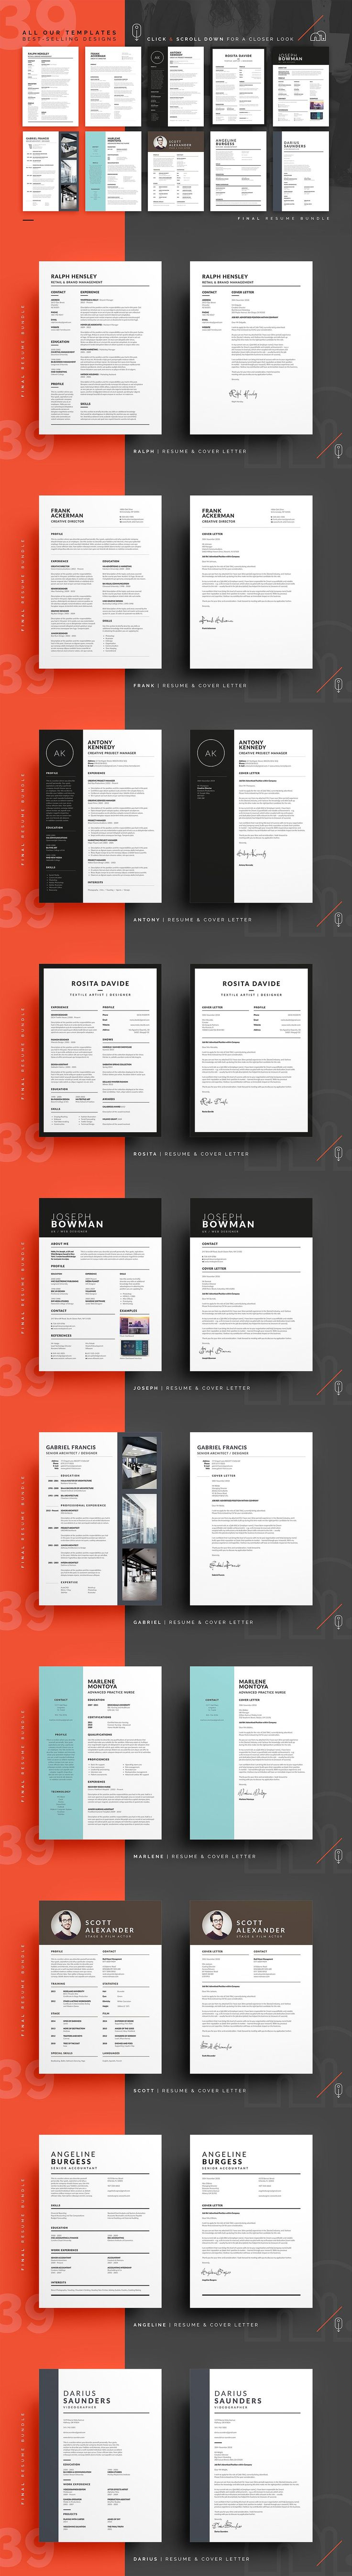 94% OFF - Final Resume/CV Bundle - Resumes - $468 worth of Resume/CV Templates for just $29 - 94% off TODAY! What's Inside The Final Bundle? 39 Resume/CV & Cover Letter Templates and 10 Business Card Templates. Get the job you want with best resume bundle on Creative Market!